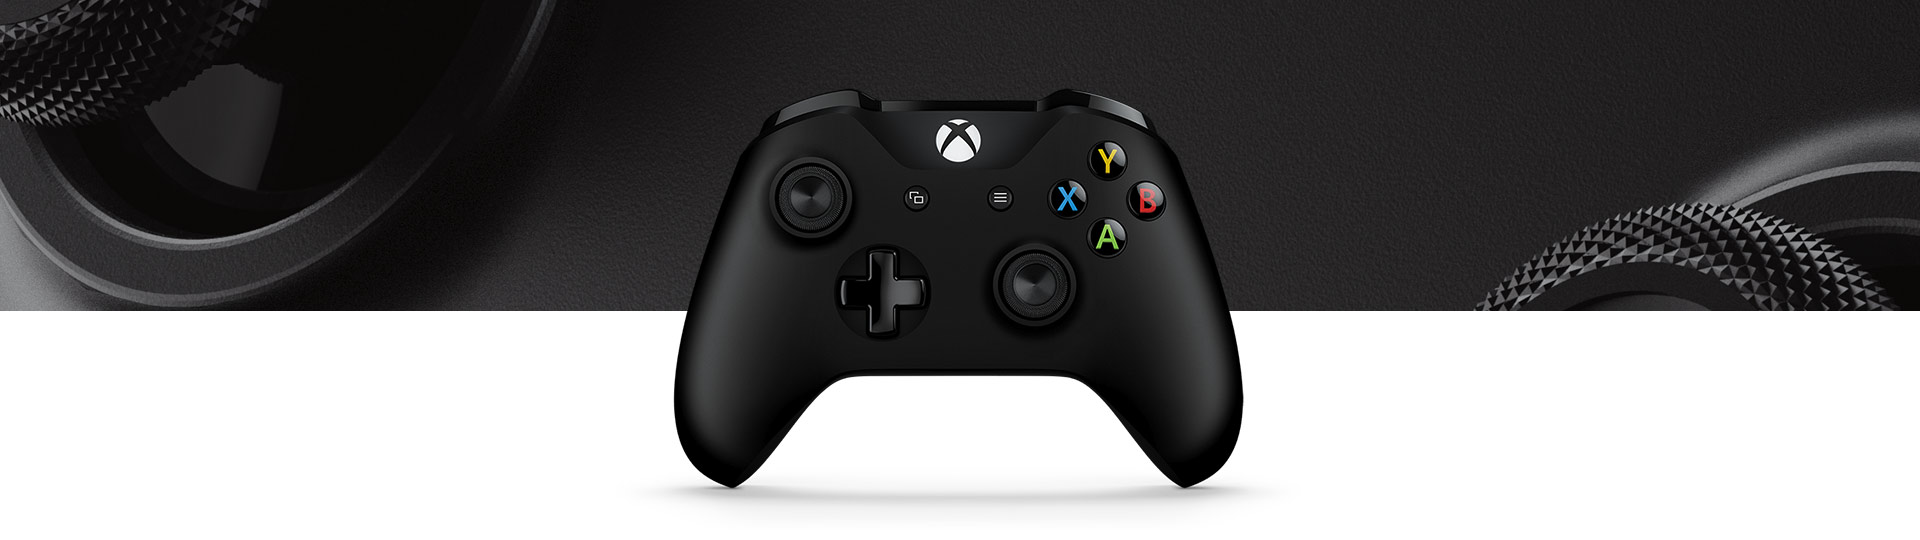 small resolution of xbox wireless controller black